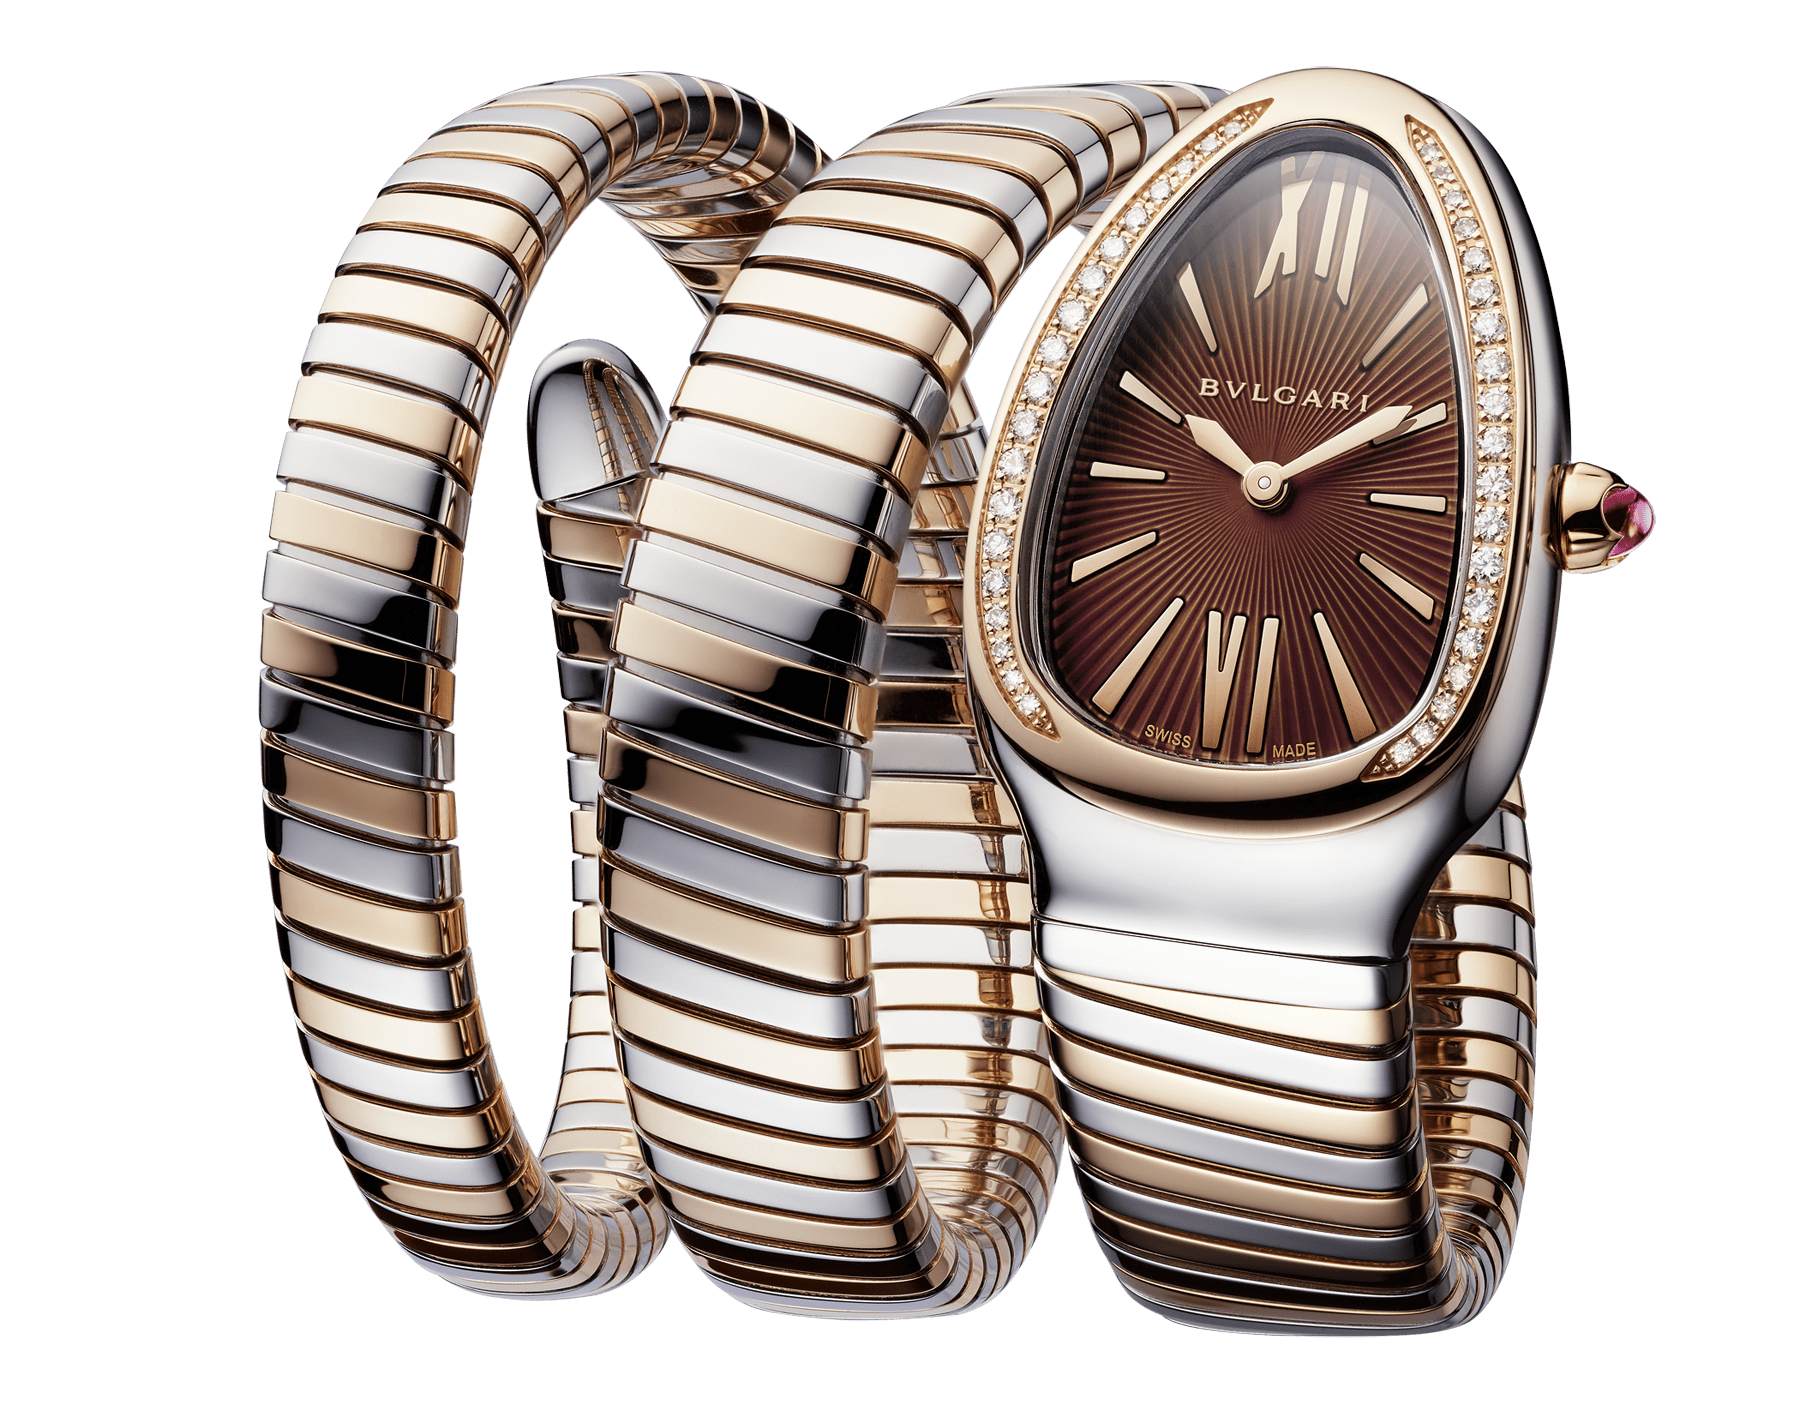 Serpenti Tubogas double spiral watch with stainless steel case, 18 kt rose gold bezel set with brilliant-cut diamonds, brown dial with guilloché soleil treatment, stainless steel and 18 kt rose gold bracelet 103070 image 2